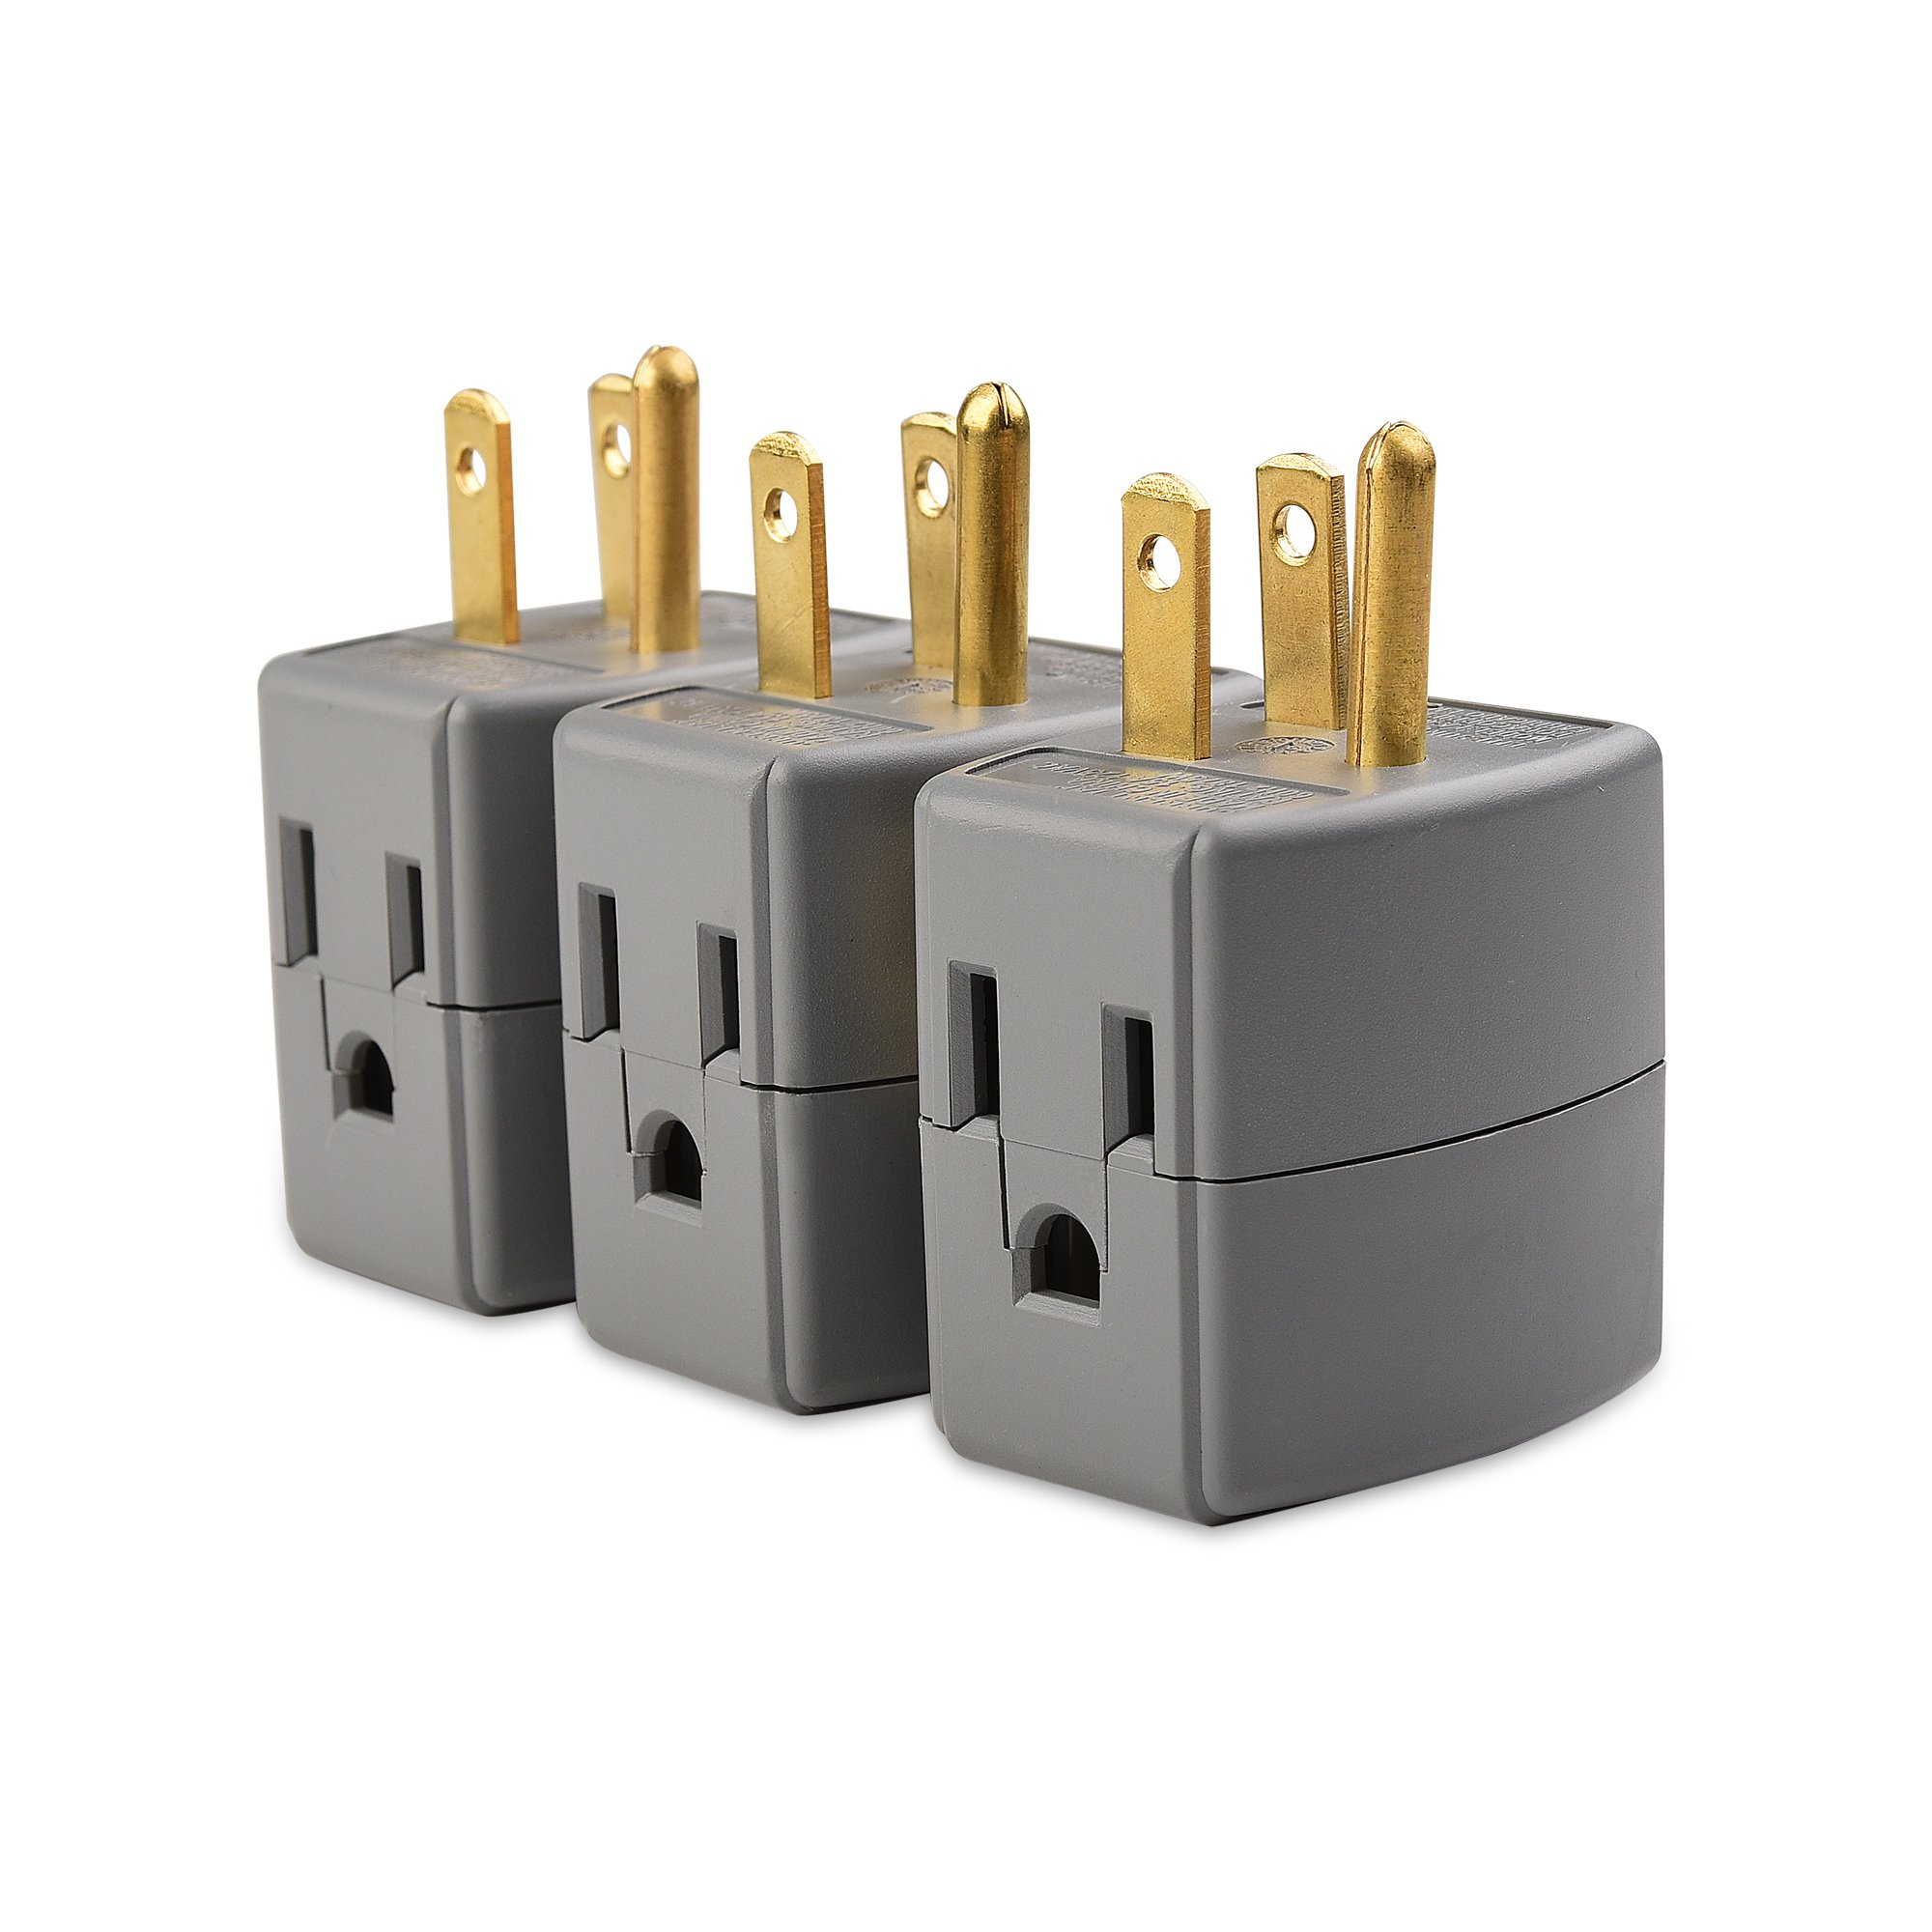 Maxxima 3 Grounded Multi Outlet Adaptor Wall Plug Turn One